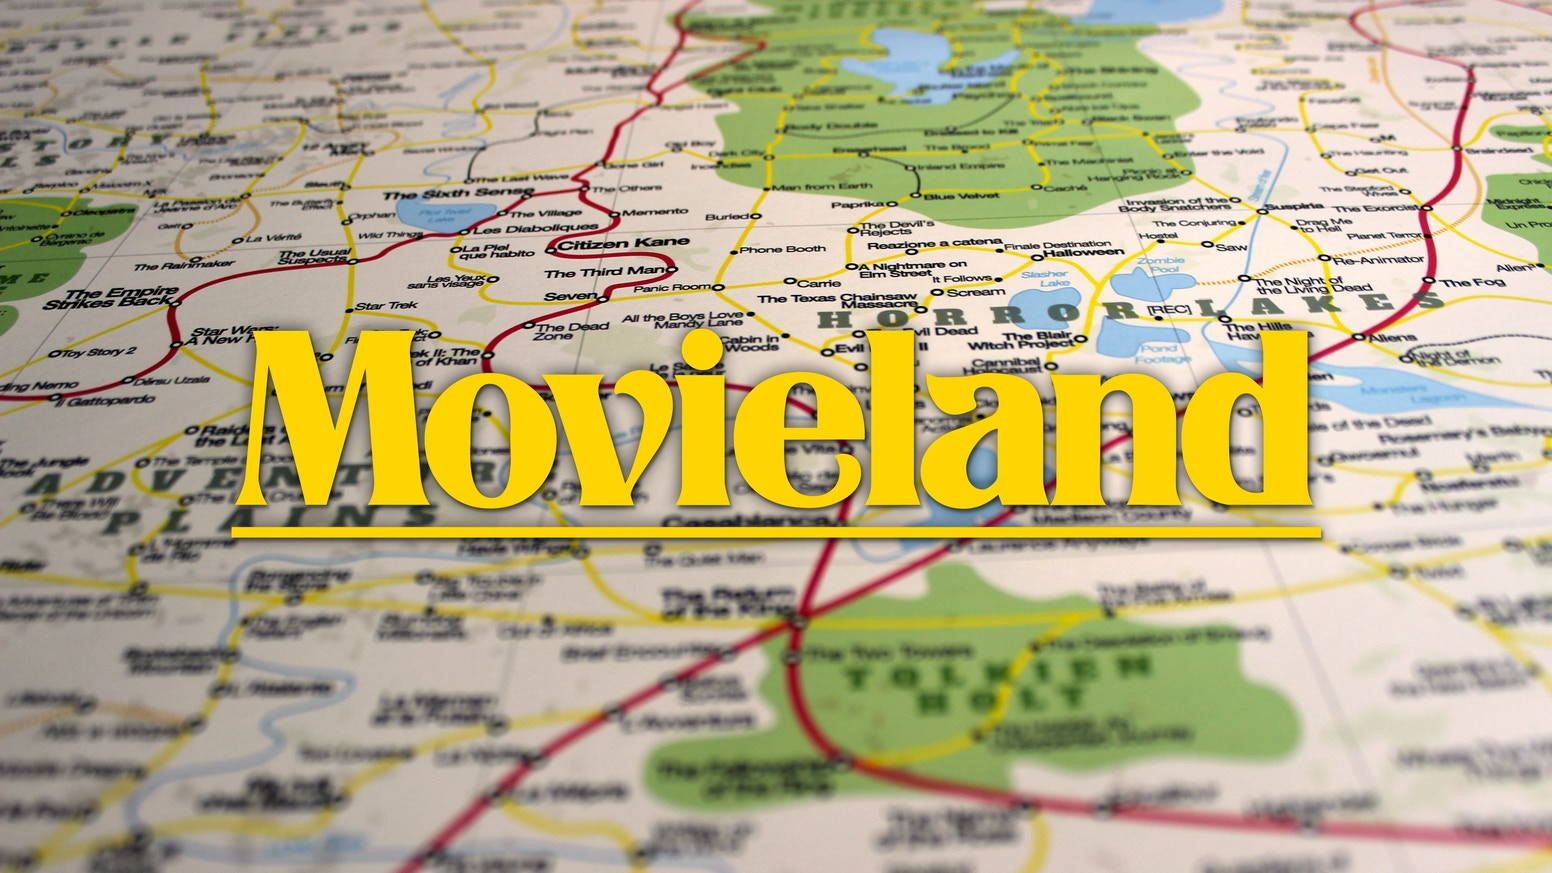 See Map Of The World.The Great Map Of Movieland Poster By David Honnorat Kickstarter